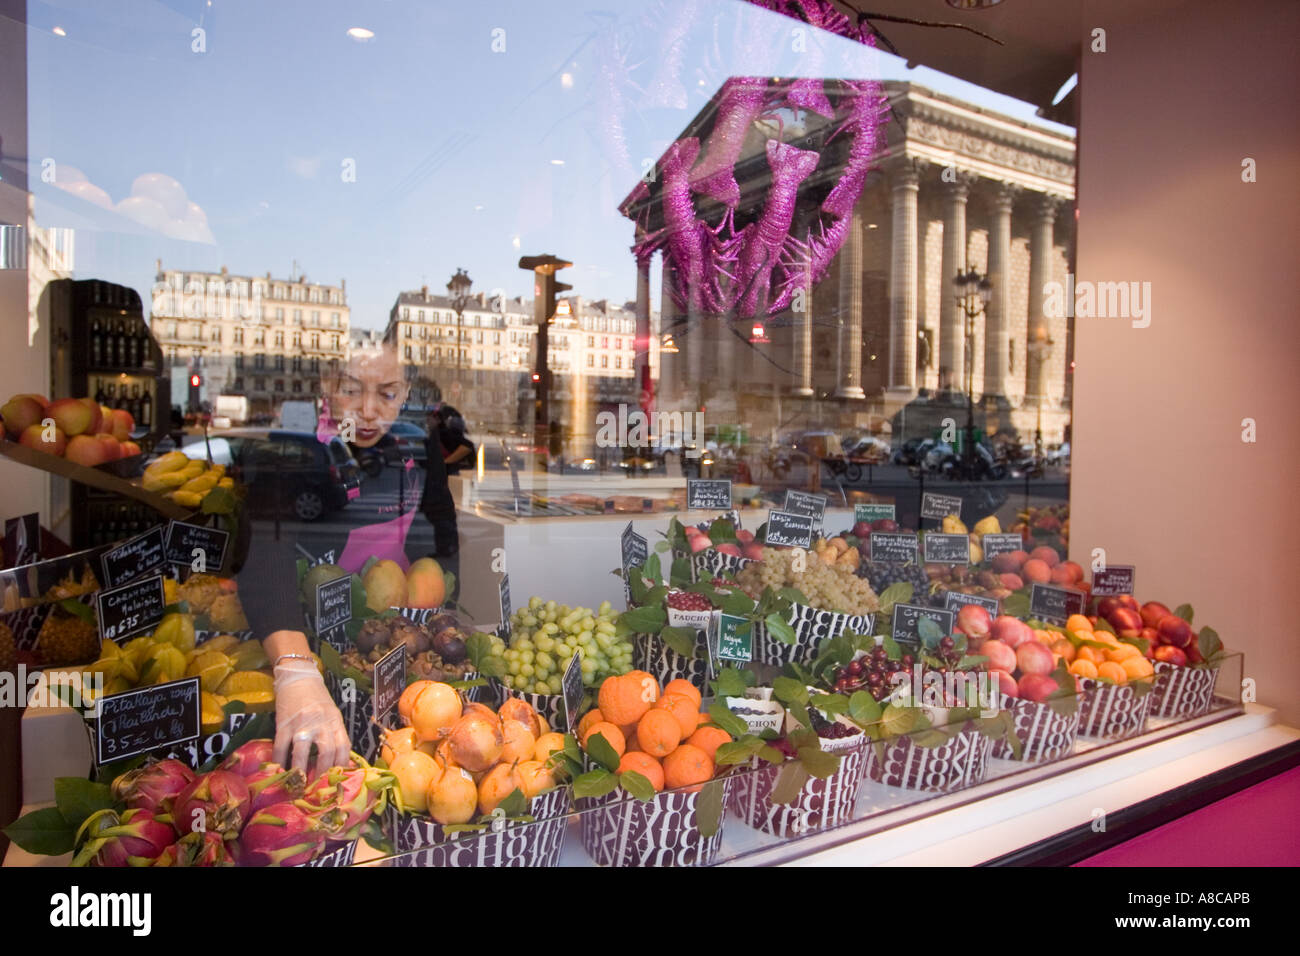 paris france place de la madeleine fauchon gourmet shop shop window stock photo royalty free. Black Bedroom Furniture Sets. Home Design Ideas